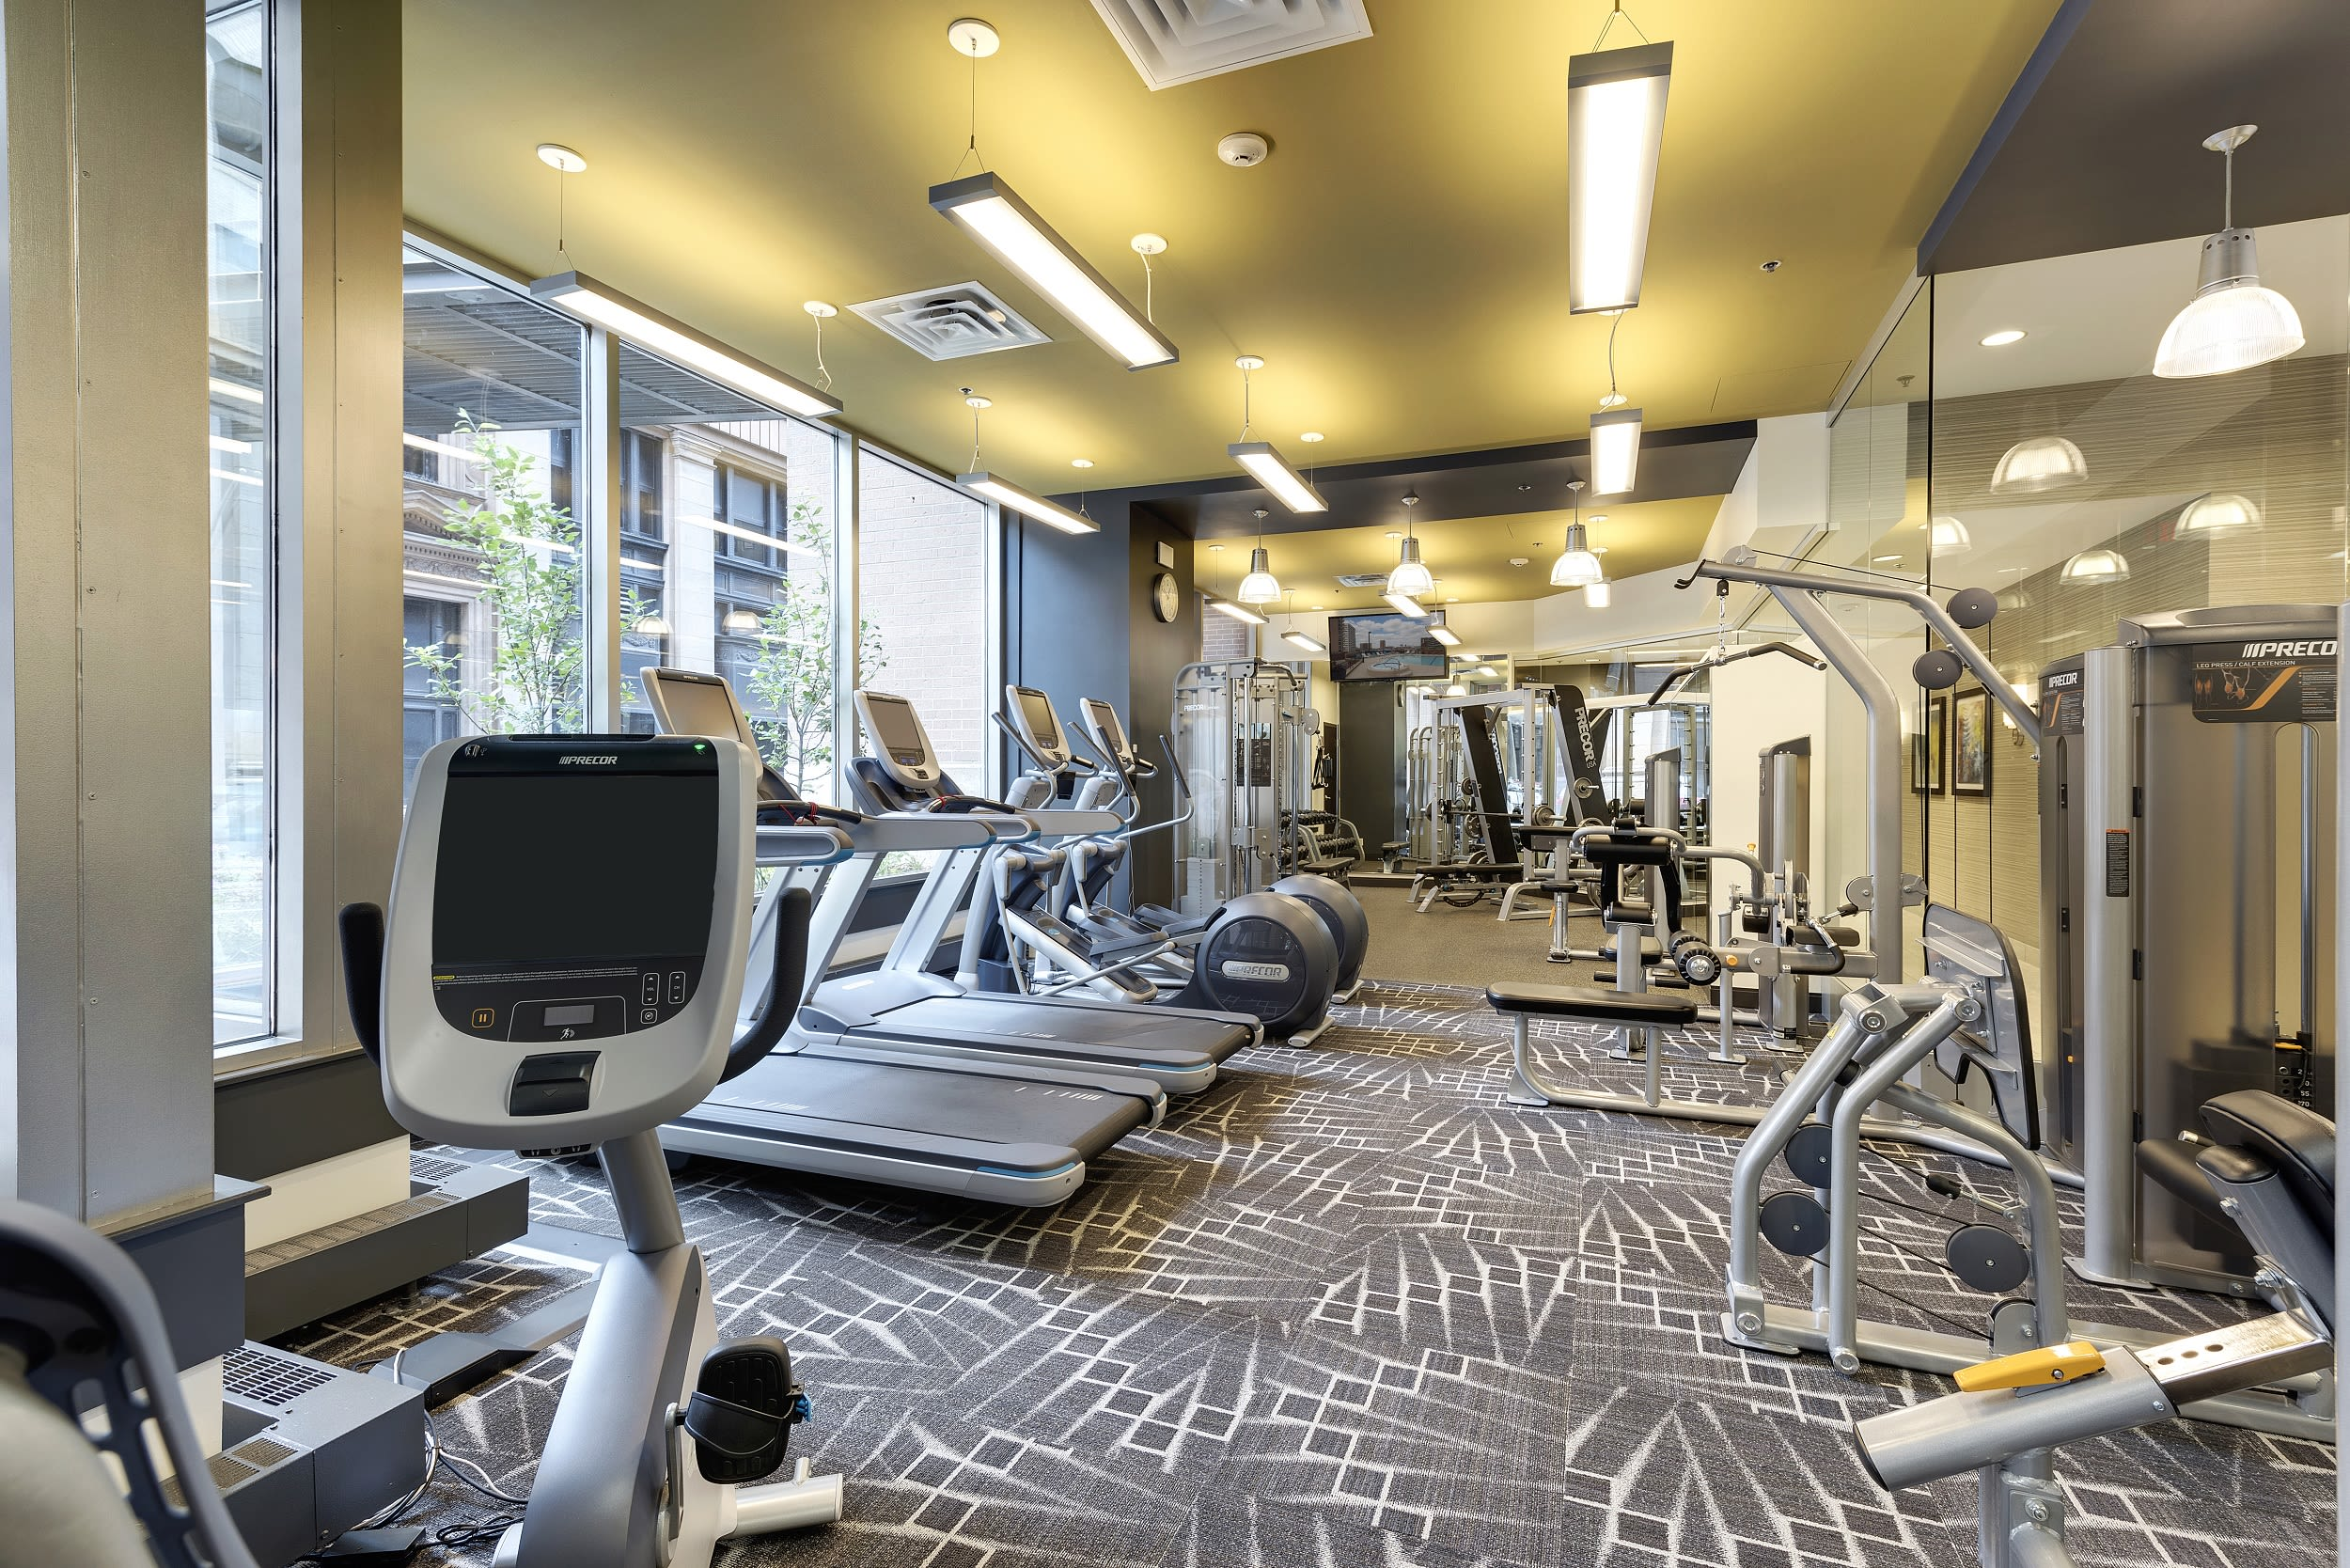 Galtier Towers Apartments in Lowertown, St. Paul, MN State of the Art Fitness Center